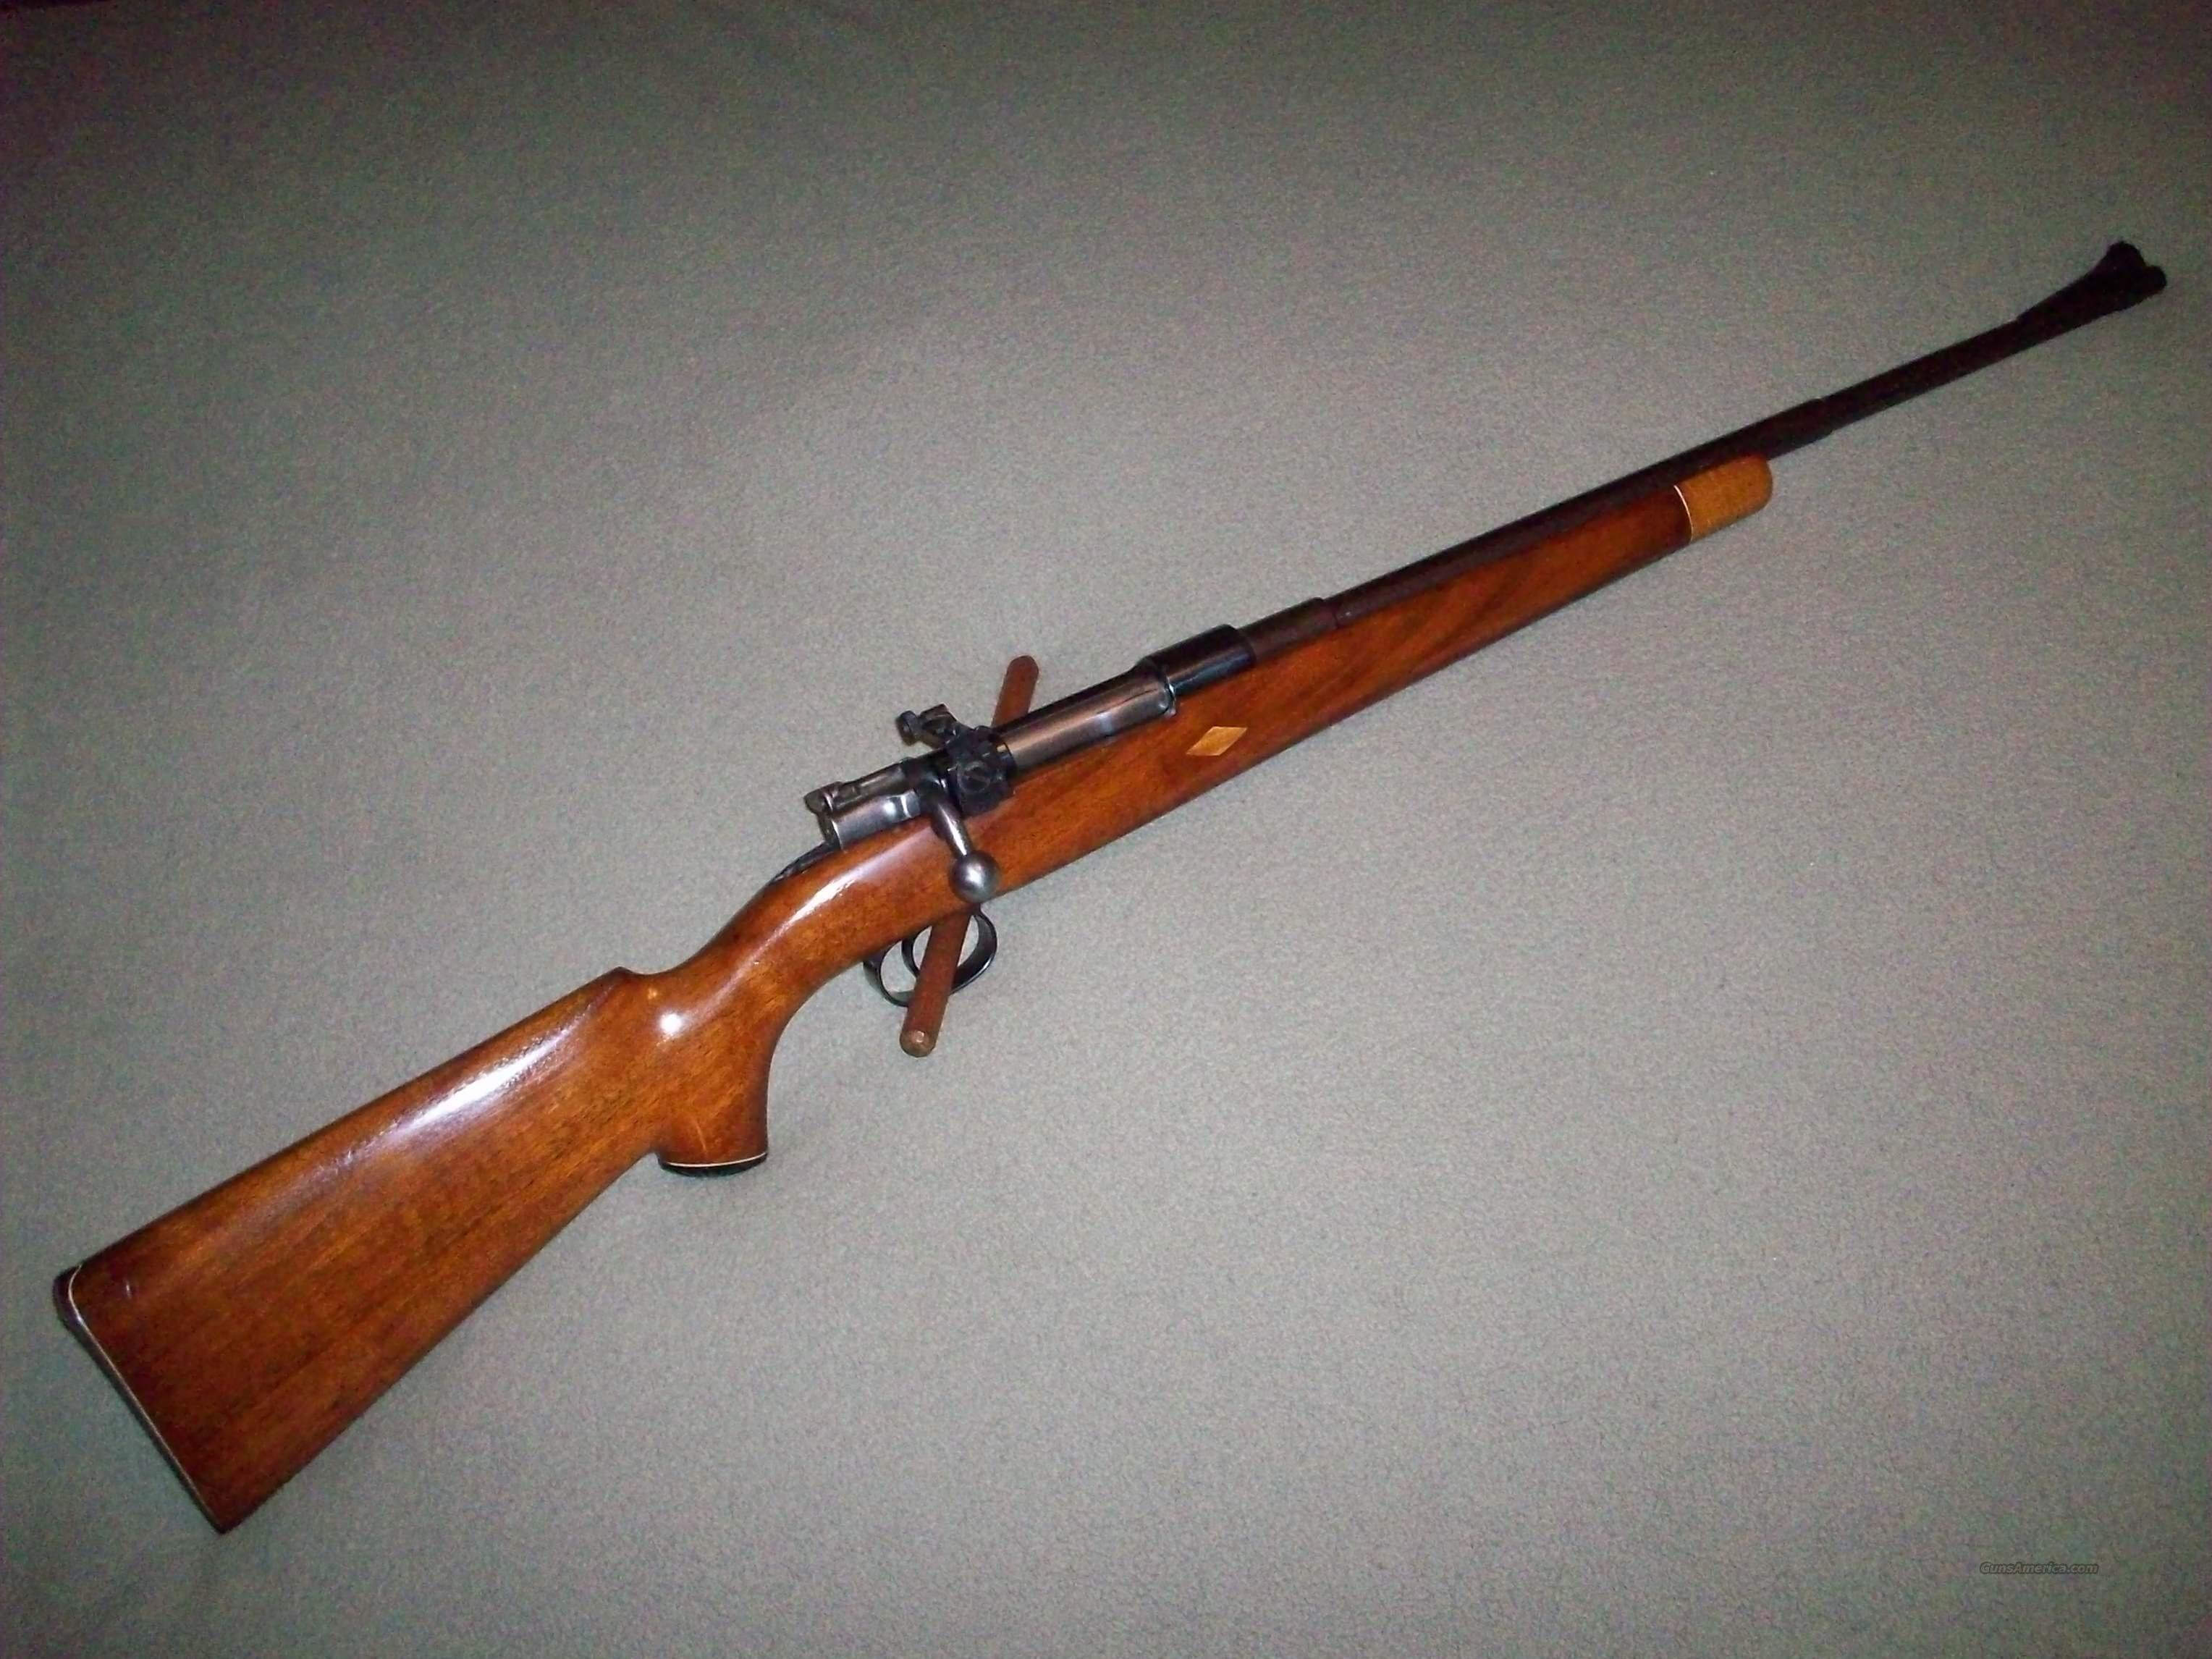 Mauser Sporter 7x57 Model 1893 Mfg. Berlin Germany   Guns > Rifles > Mauser Rifles > Spanish